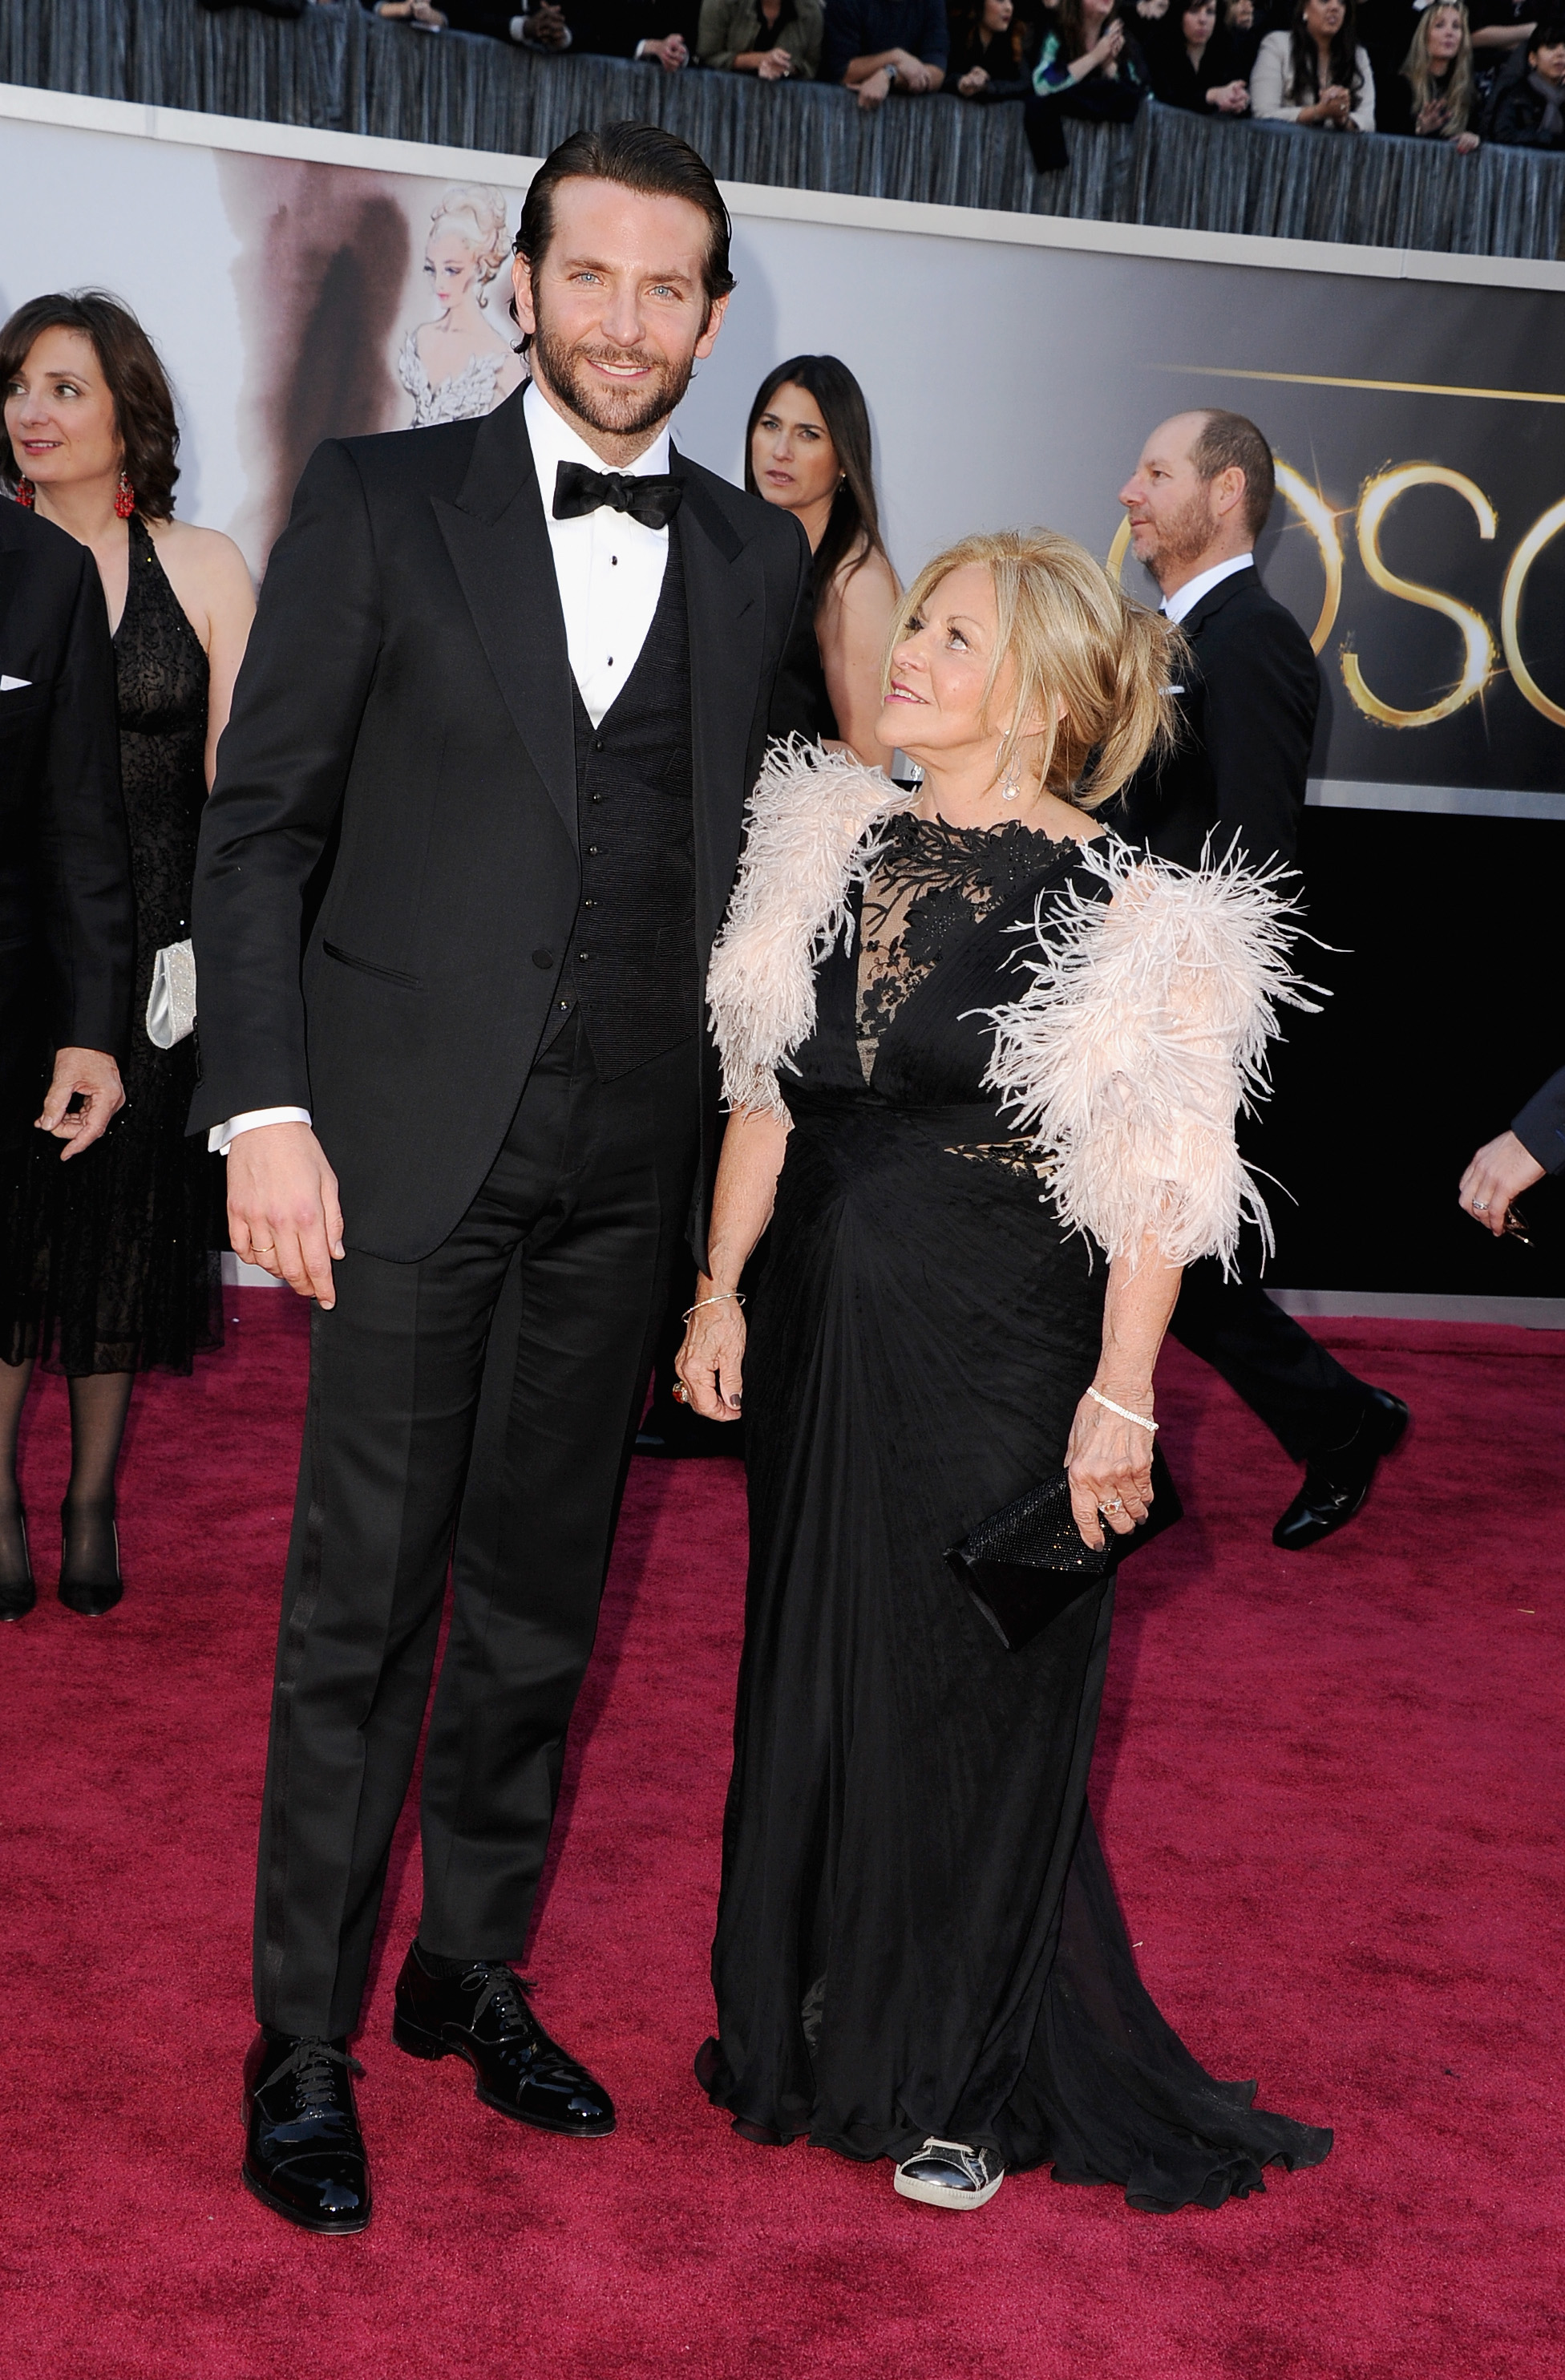 Bradley Cooper's mom sported sneakers on the carpet.